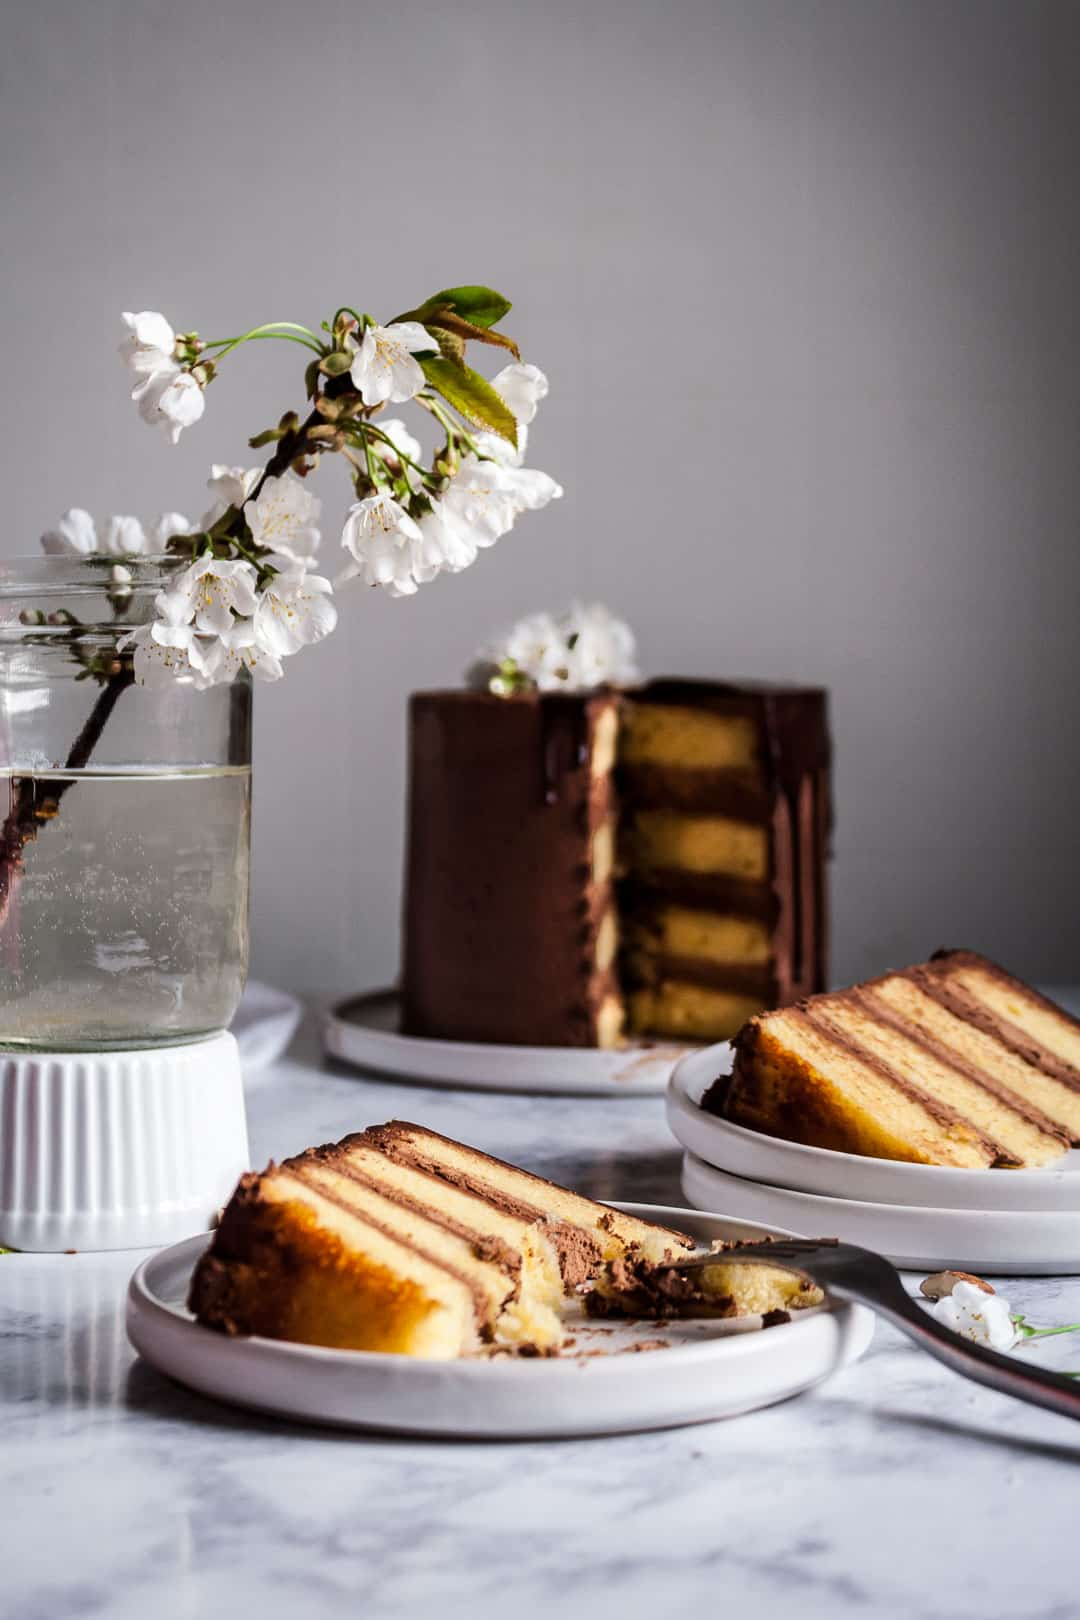 marzipan cake with chocolate buttercream and chocolate ganache drip on a white platter and marble surface, with two pieces cut and plated on white plates next to a vase of white cherry blossoms